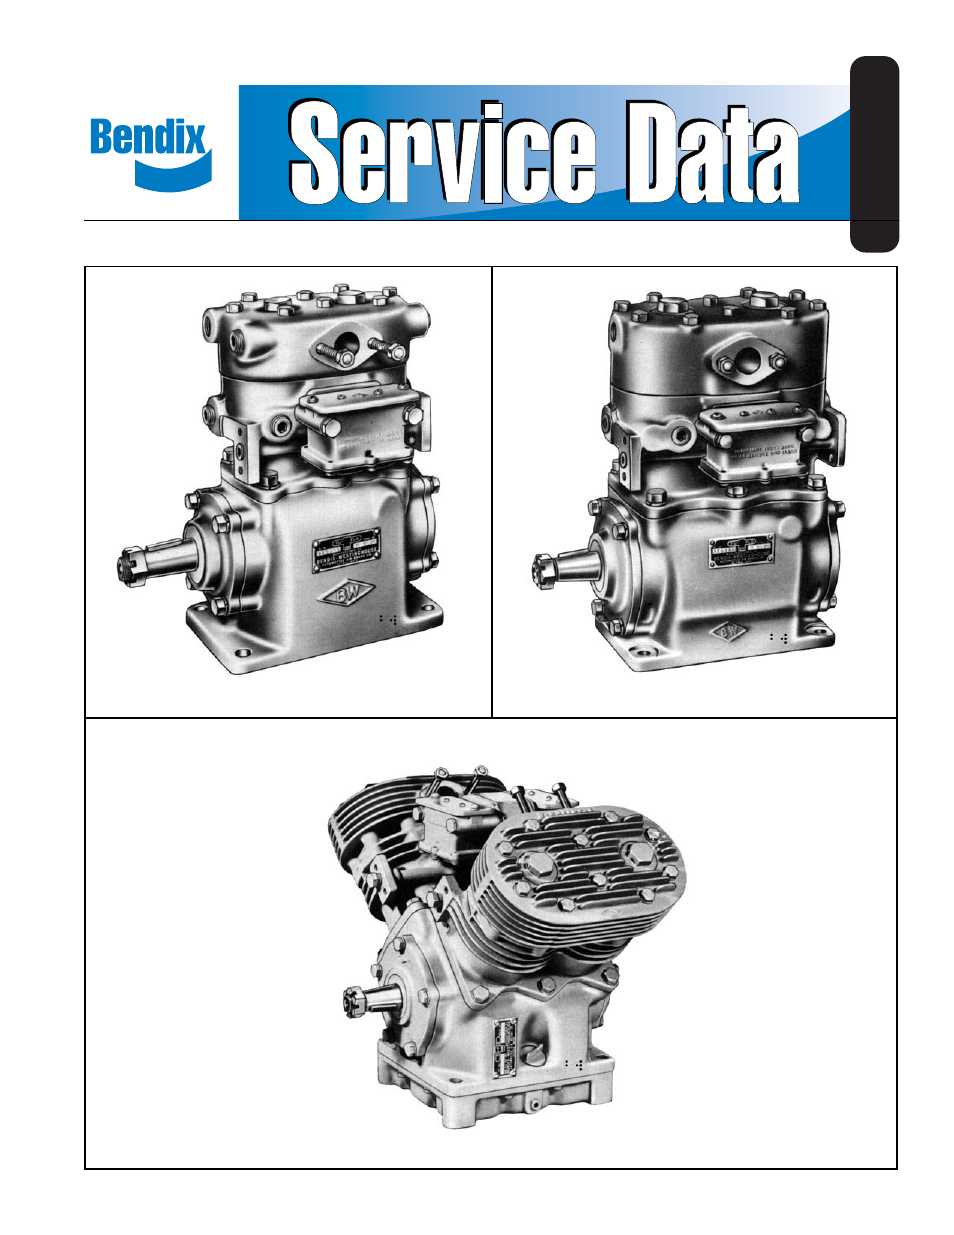 bendix commercial vehicle systems tu